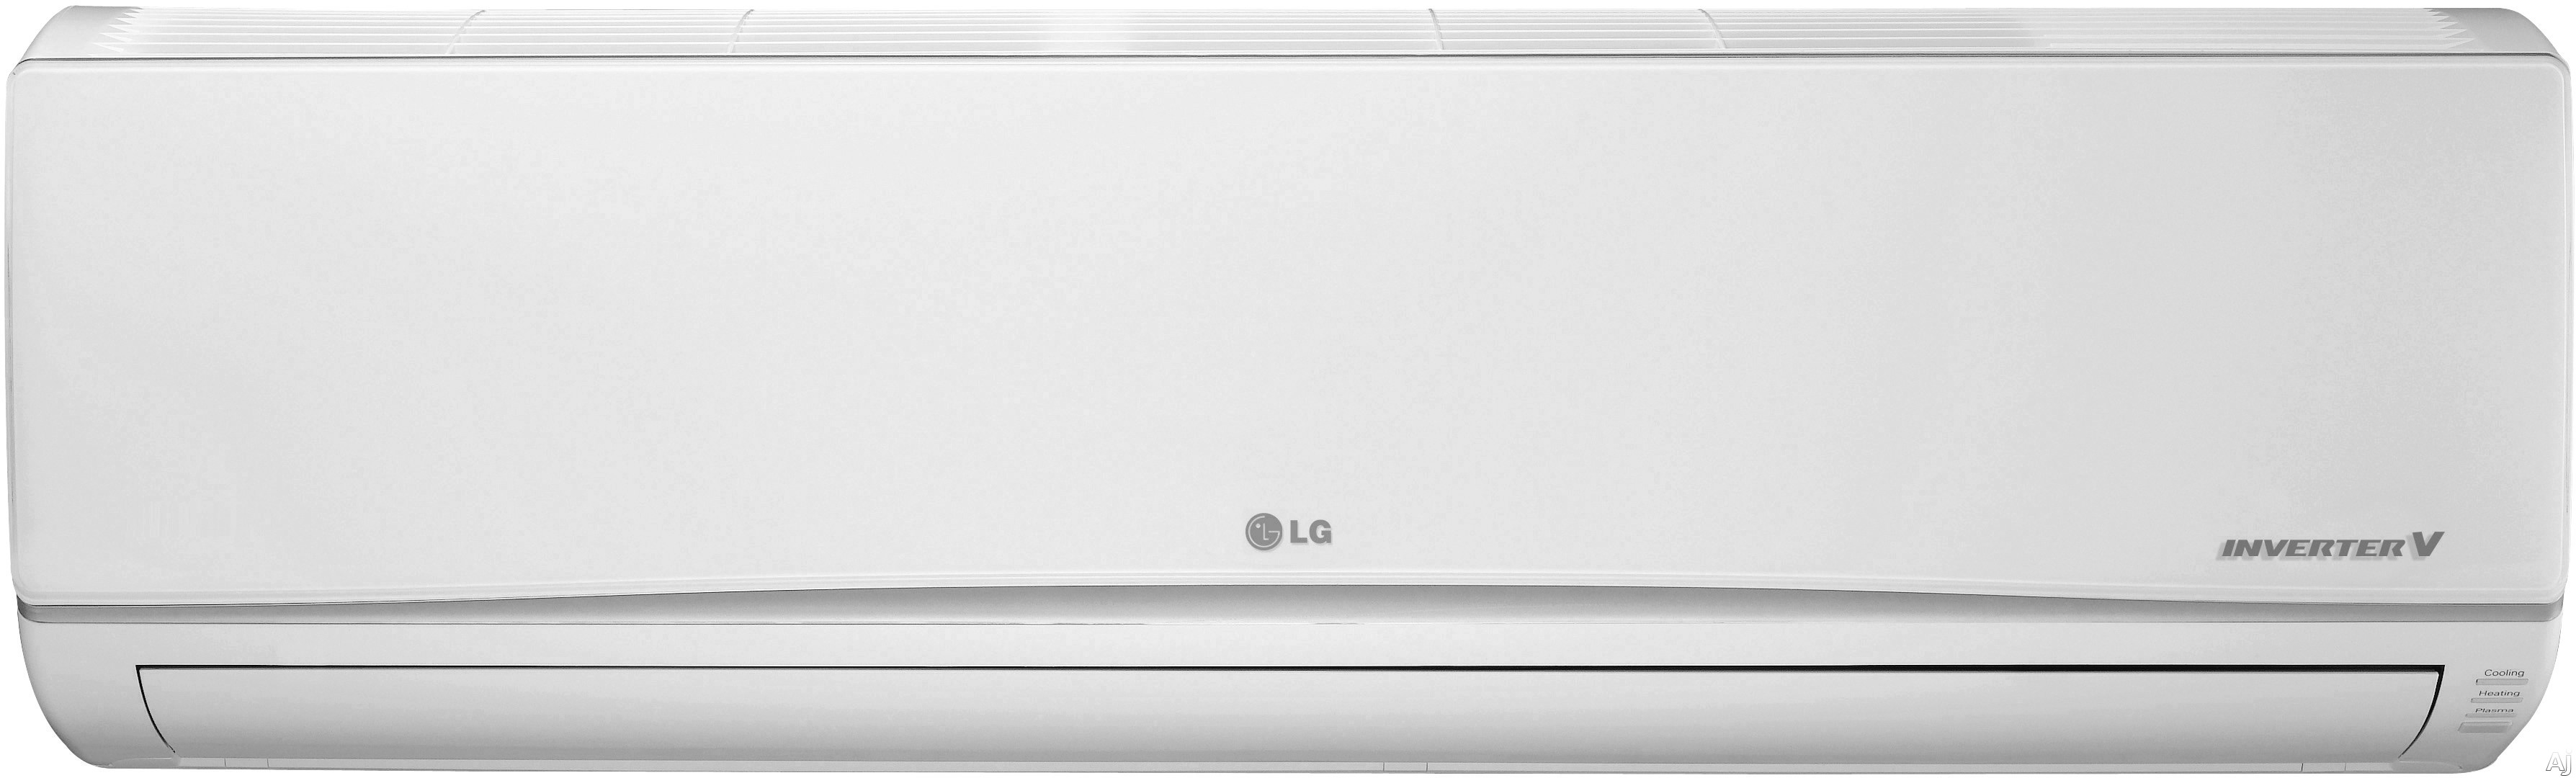 LG LG24KB2K61 3 Room Mini Split System with Heat Pump, Heat Pump, Inverter (Variable Speed Compressor), Low Ambient Operation, R-410A Refrigerant, Auto Restart, Auto Operation, Self-Diagnosis, Defrost/Deicing and Gold Fin Anti-corrosion LG24KB2K61